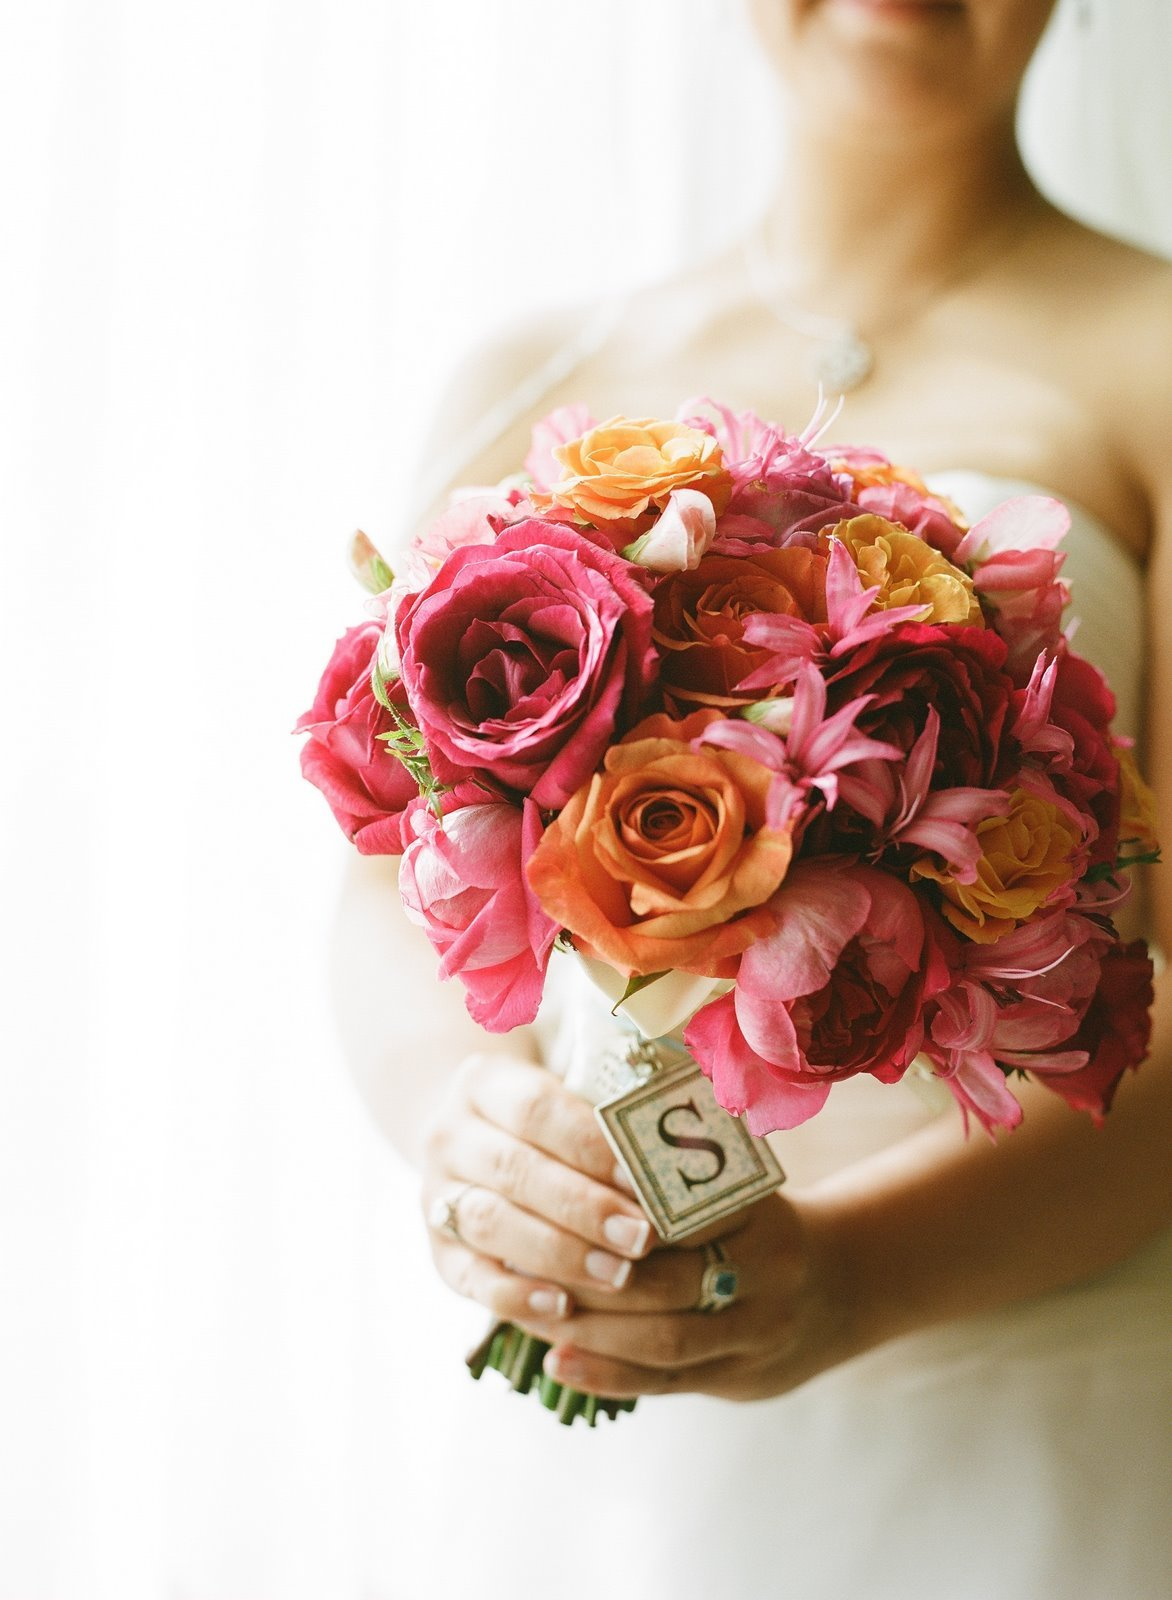 Flowers & Decor, orange, pink, Roses, Flower, Bouquet, Ranunculus